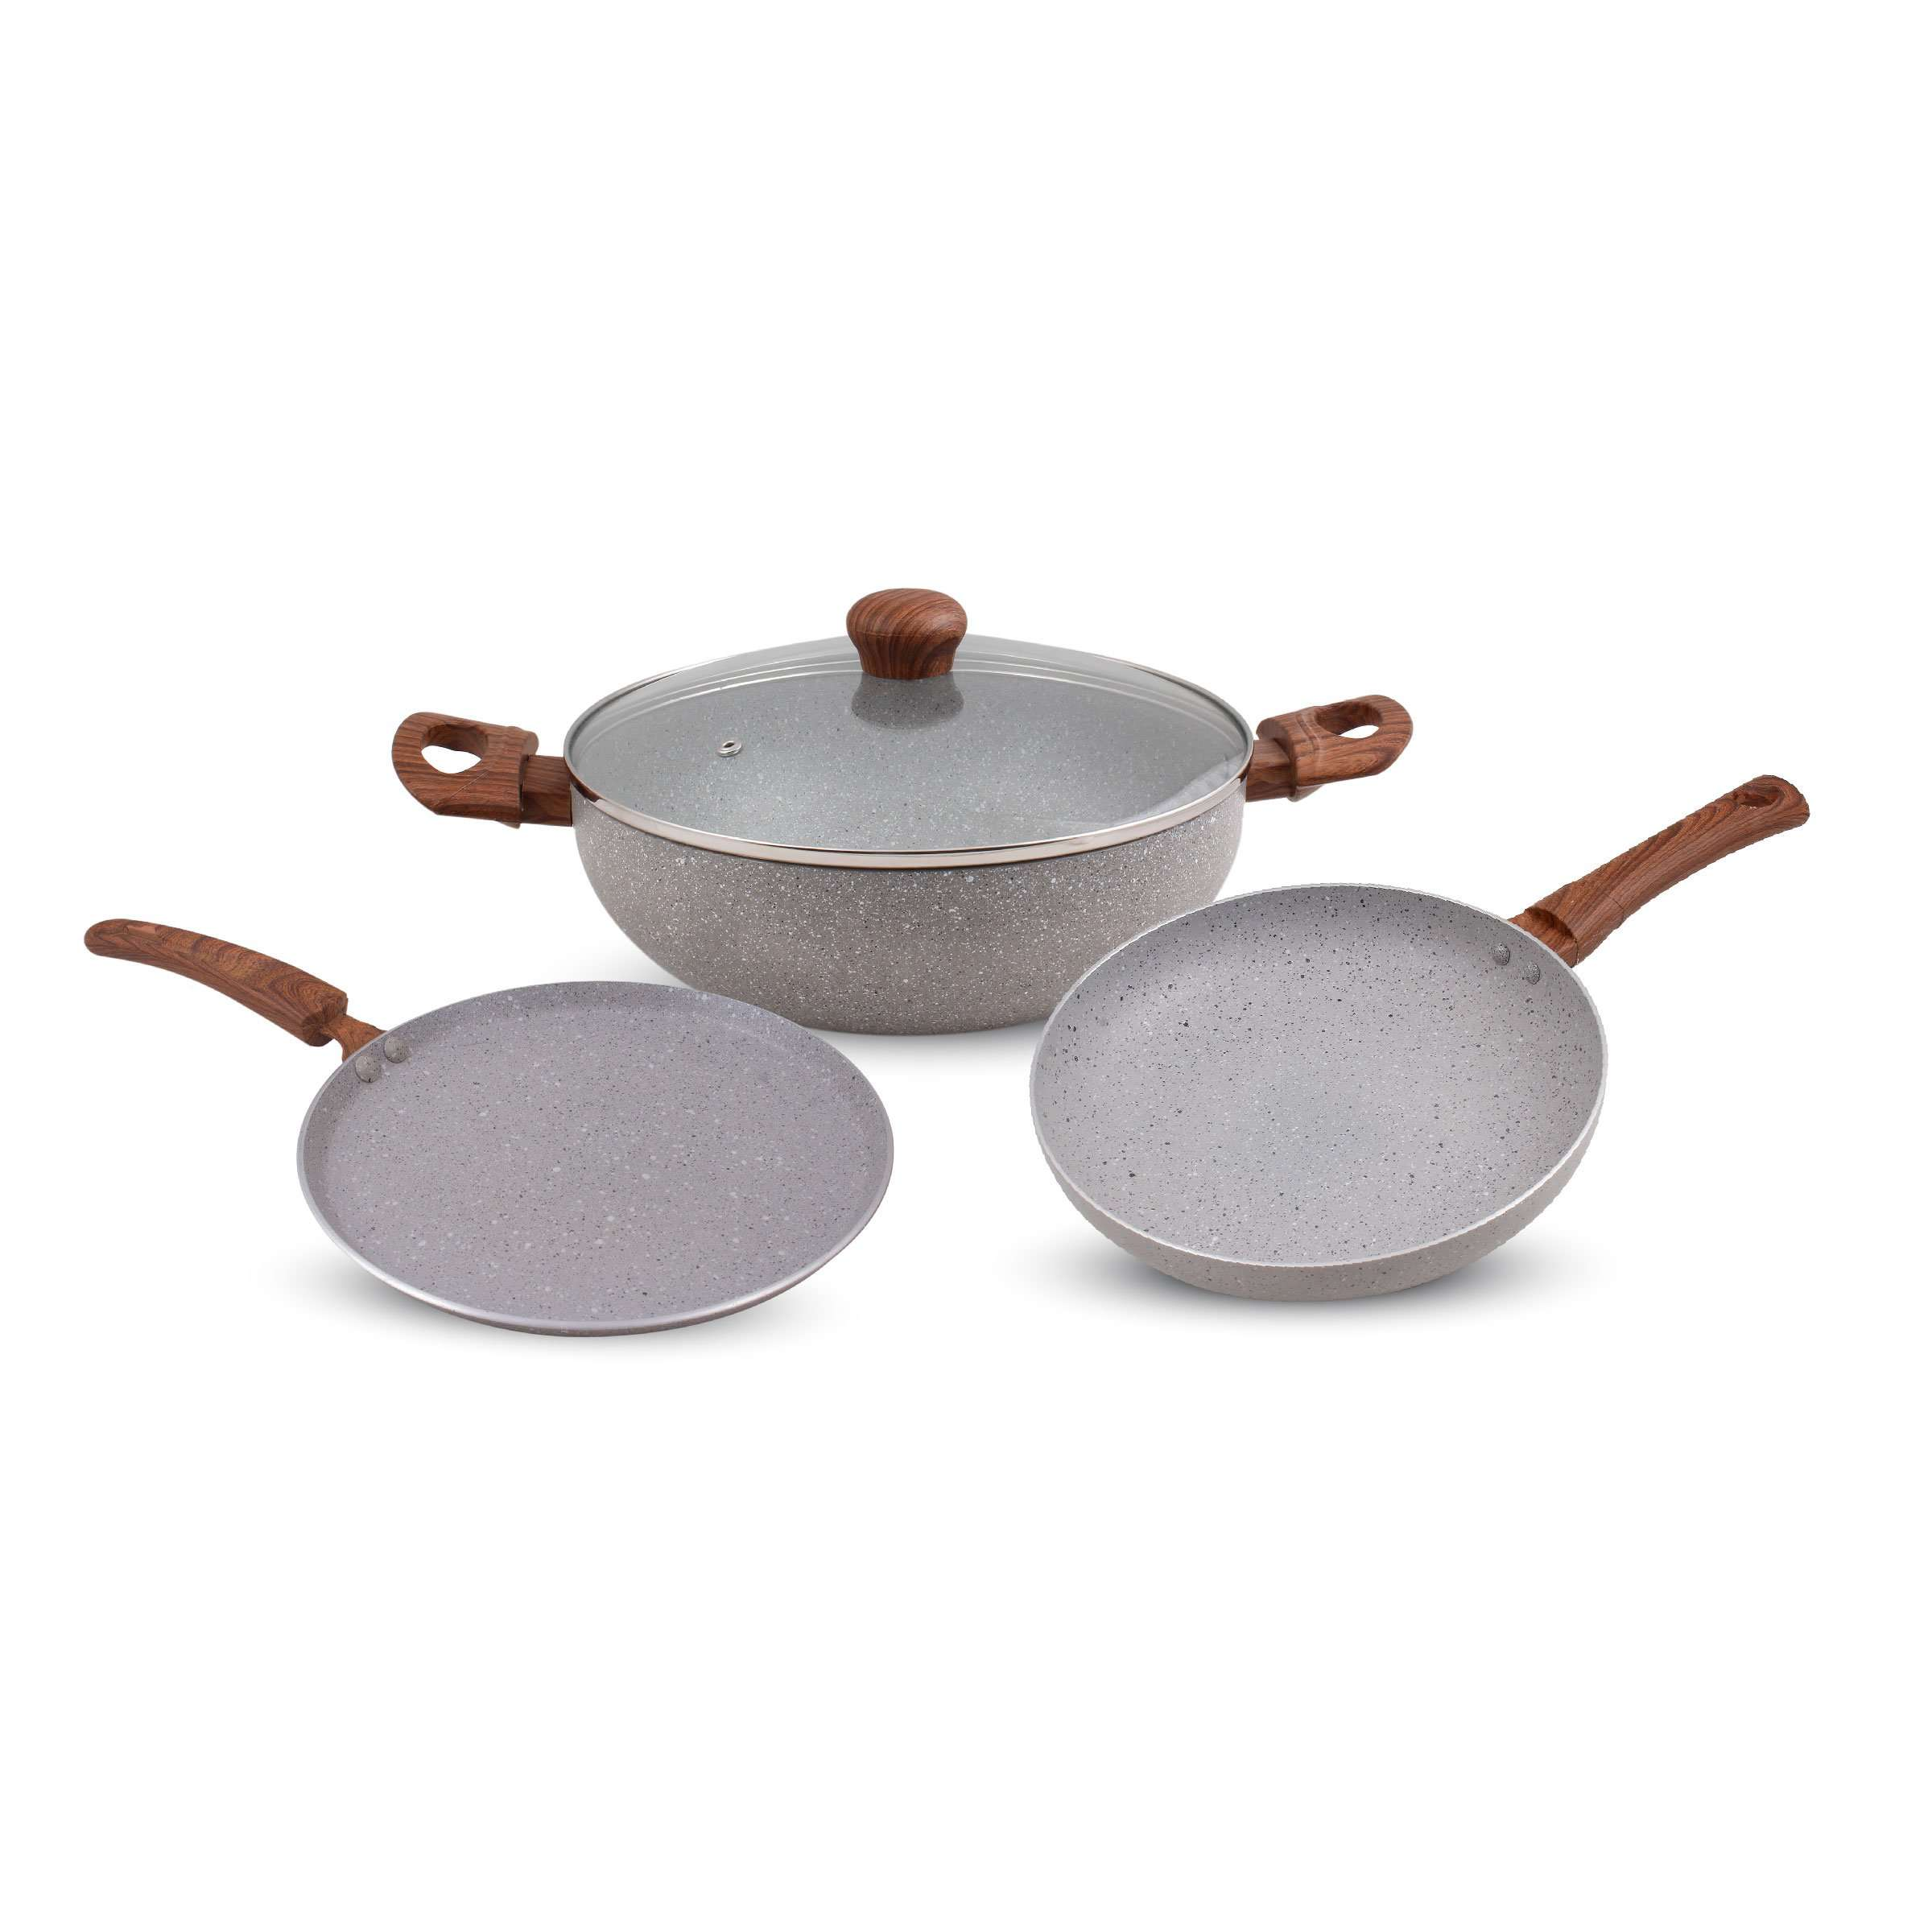 Krav 3 Pieces Non Stick Cookware Set, Granite Color - (Kadhai + Tawa + Pan)